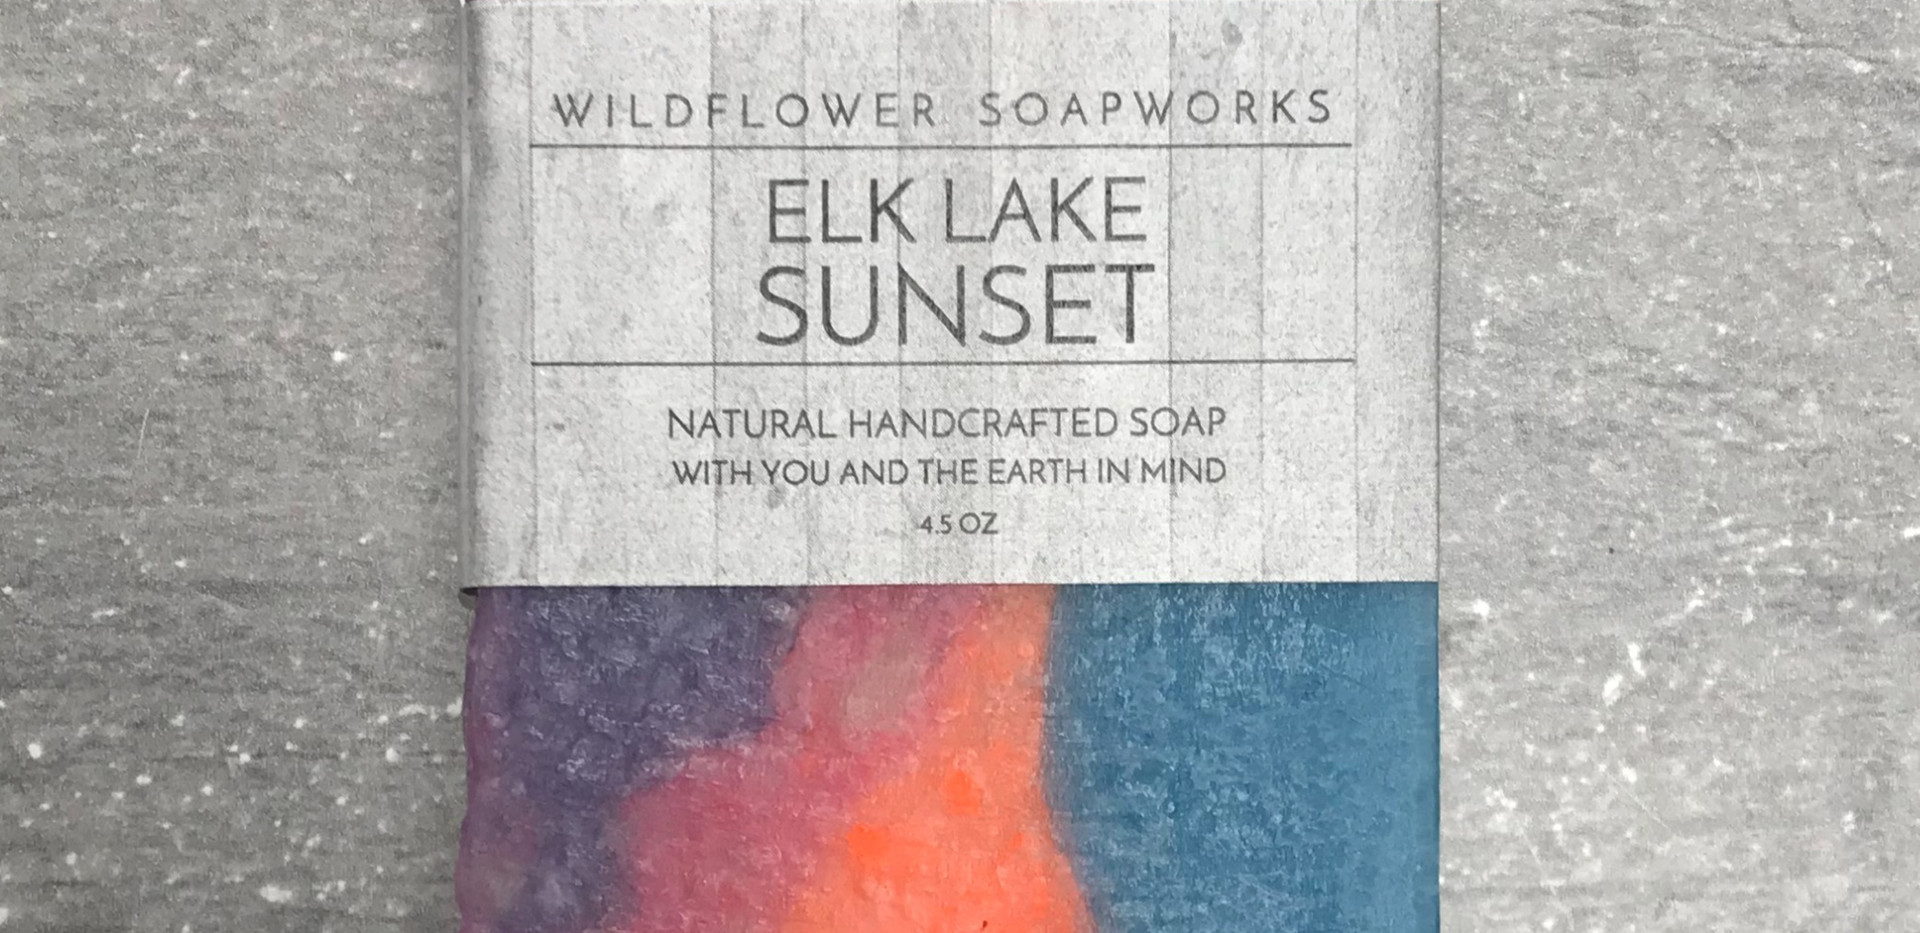 Take home with you, with our Elk Lake Sunset!